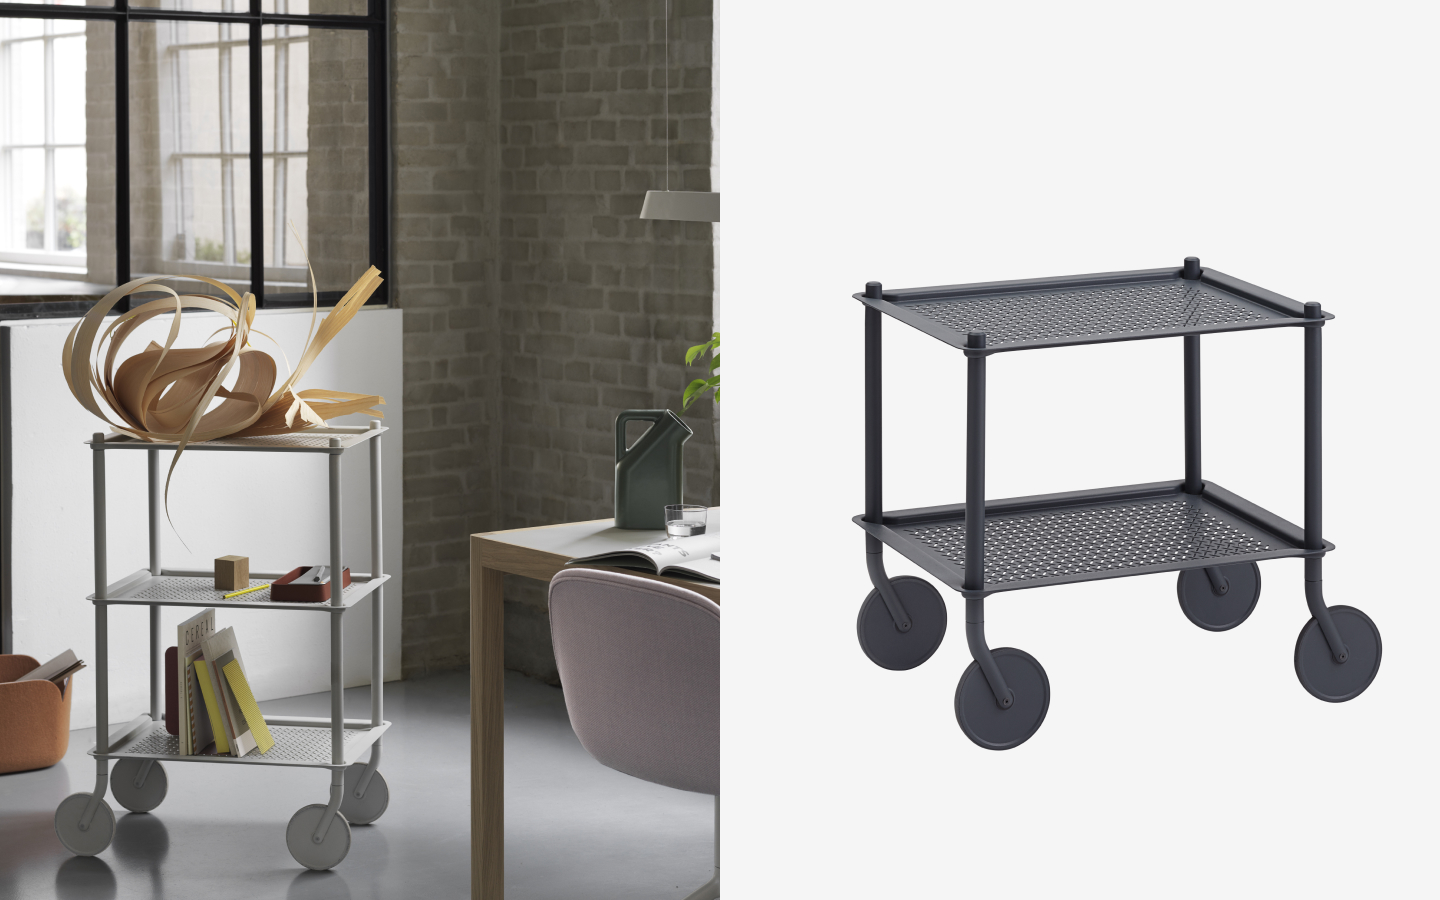 Trolleys with perforated metal shelves in light and dark grey